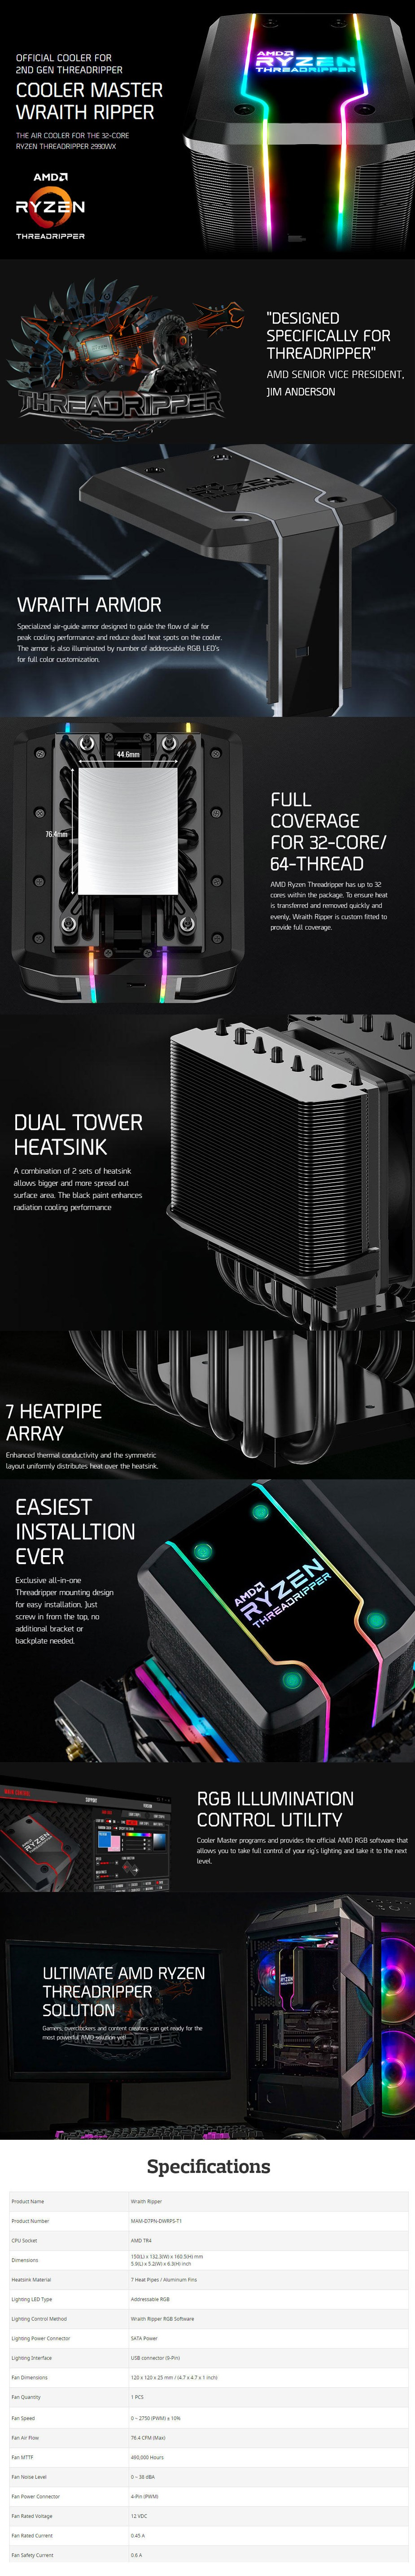 Cooler Master Wraith Ripper AMD TR4 ARGB CPU Cooler - Desktop Overview 1